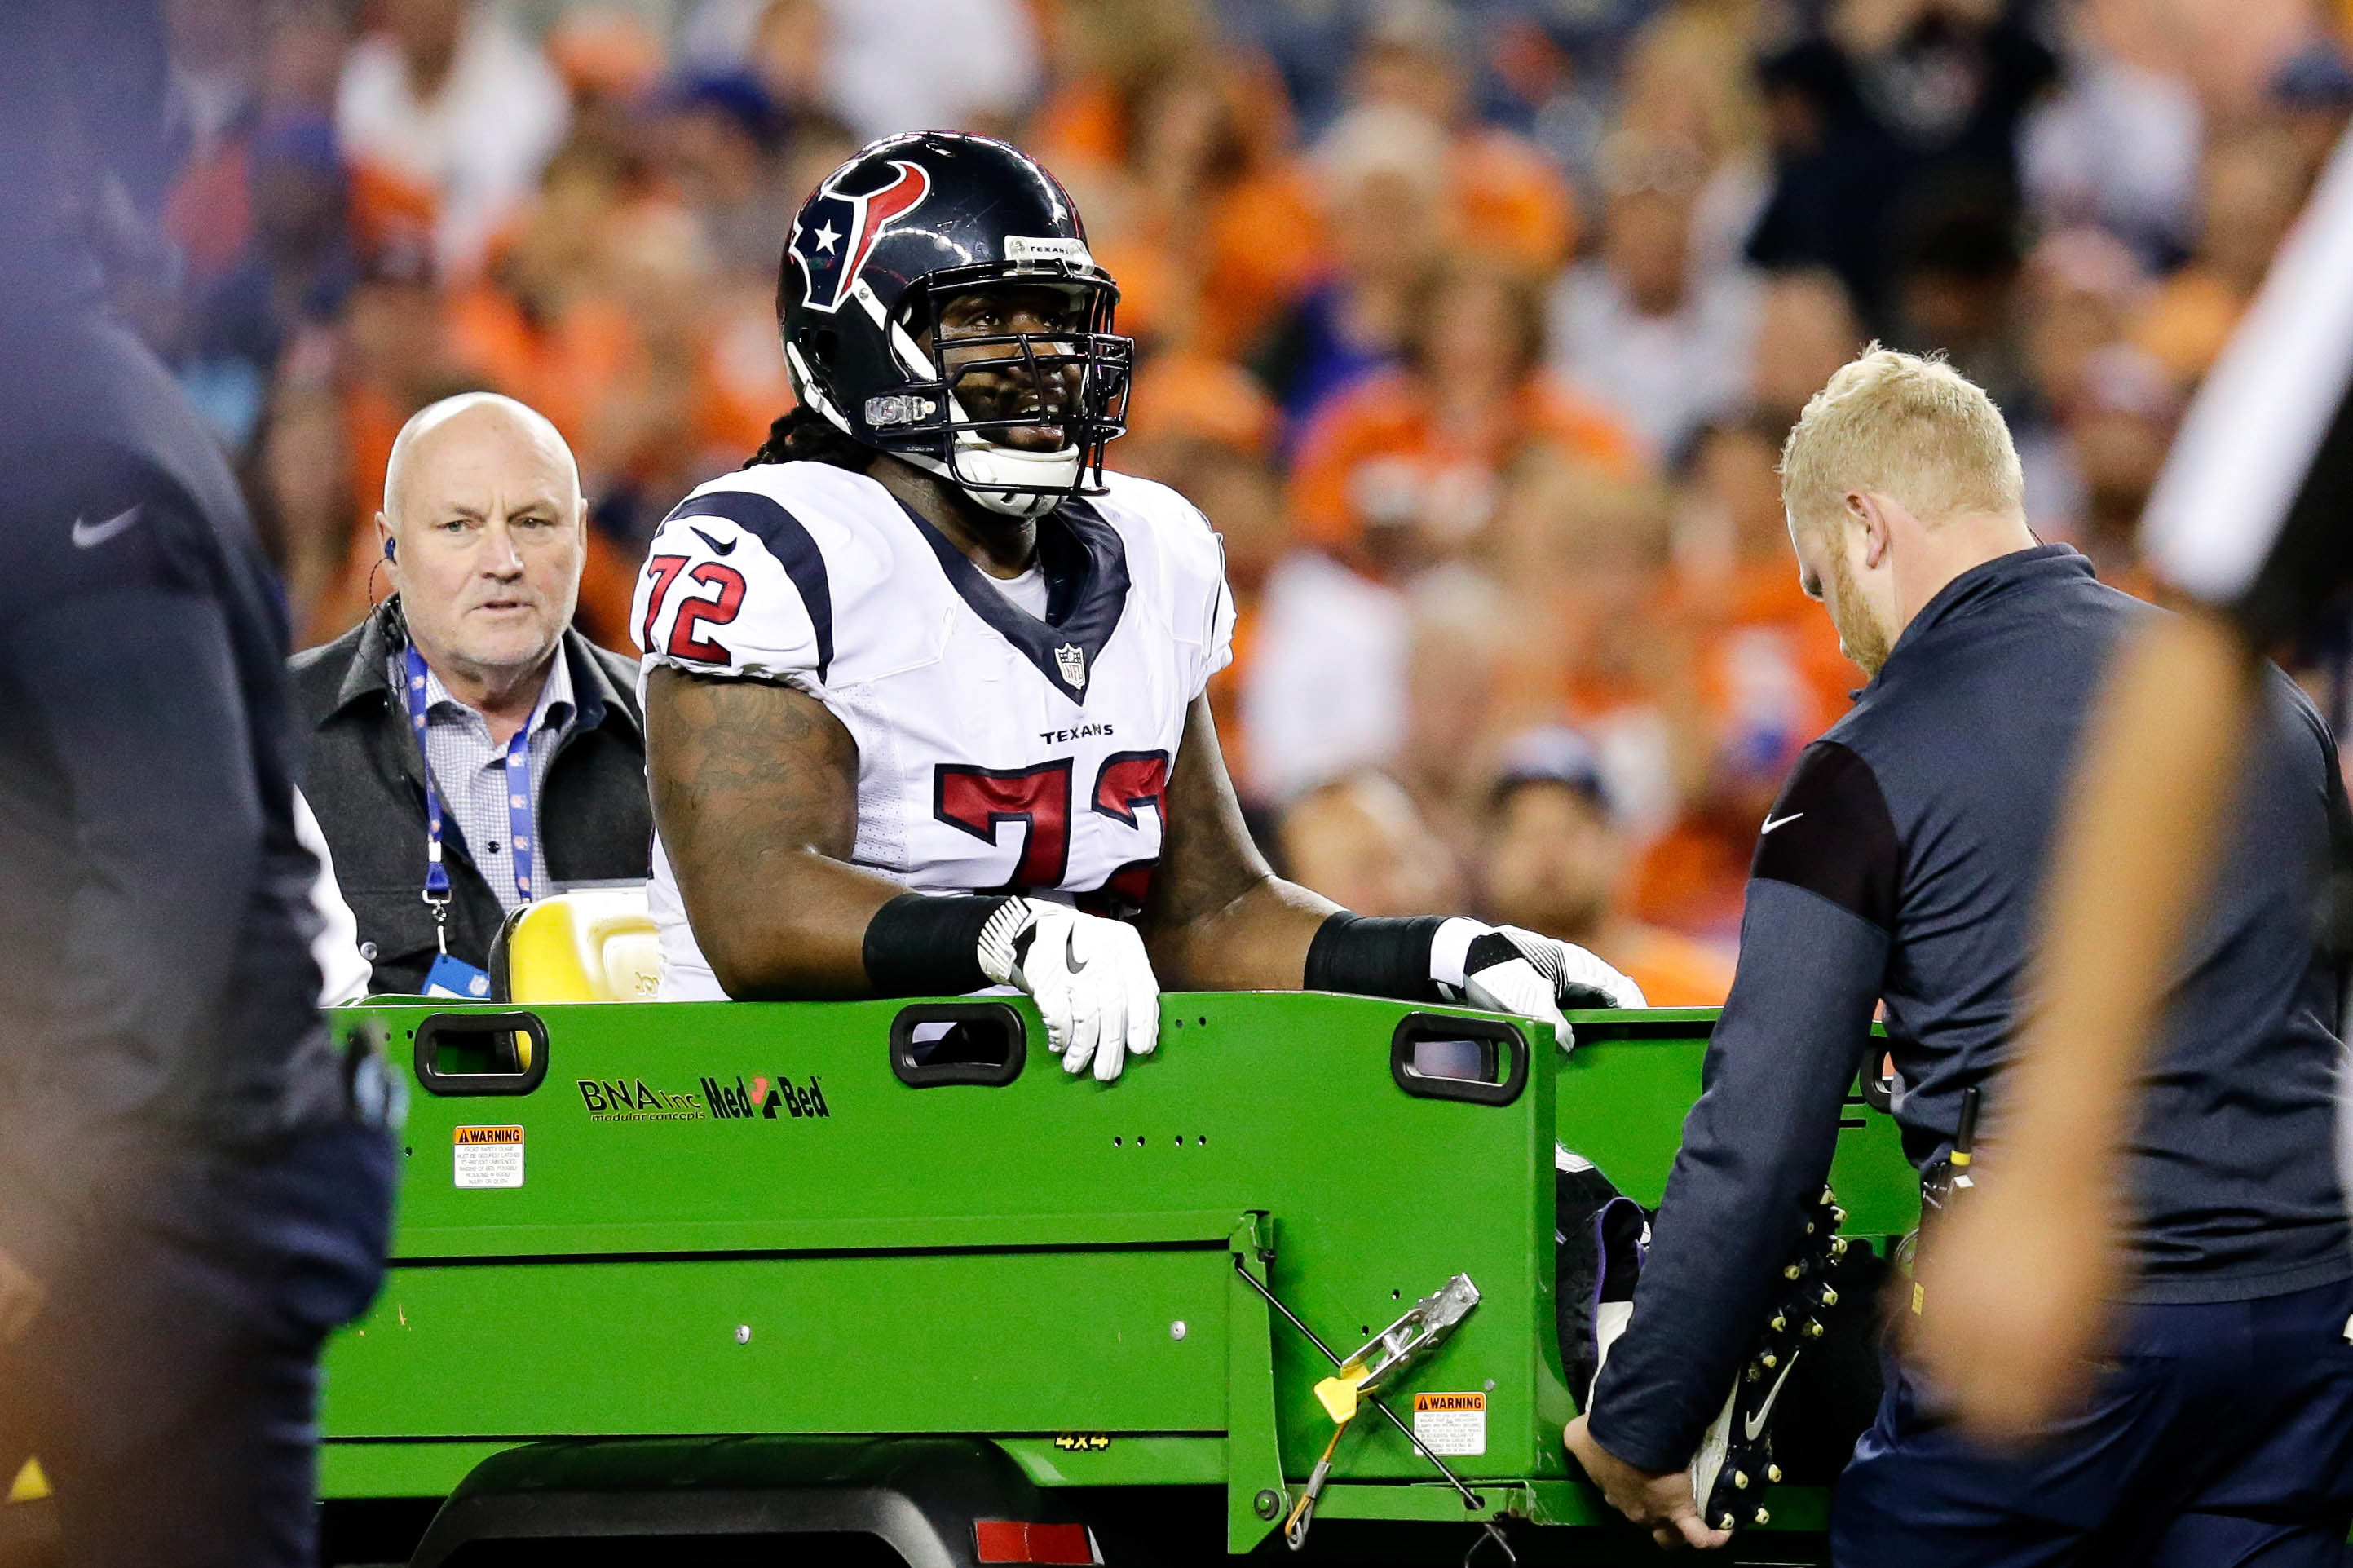 Oct 24, 2016; Denver, CO, USA; Houston Texans tackle Derek Newton (72) is carted off the field in the first quarter against the Denver Broncos at Sports Authority Field at Mile High. Mandatory Credit: Isaiah J. Downing-USA TODAY Sports